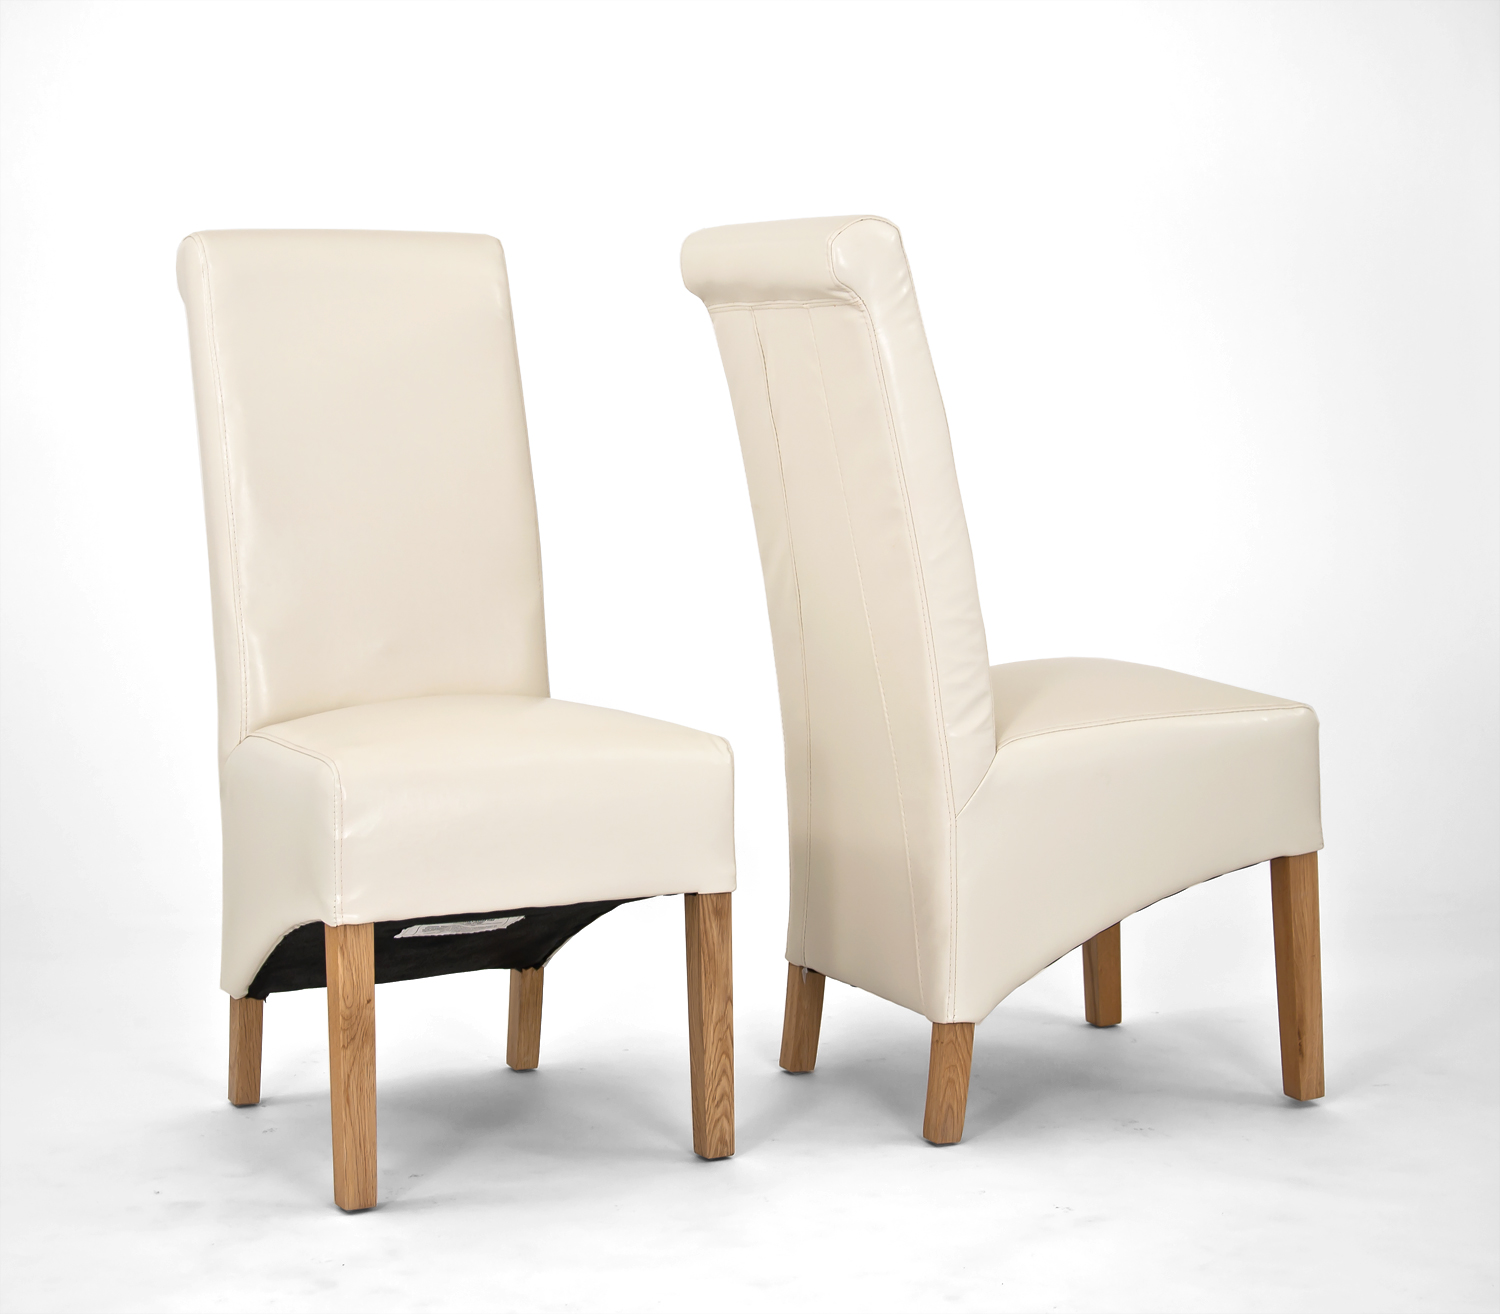 Sherwood oak rolltop pu bicast leather chair cream for New style chair